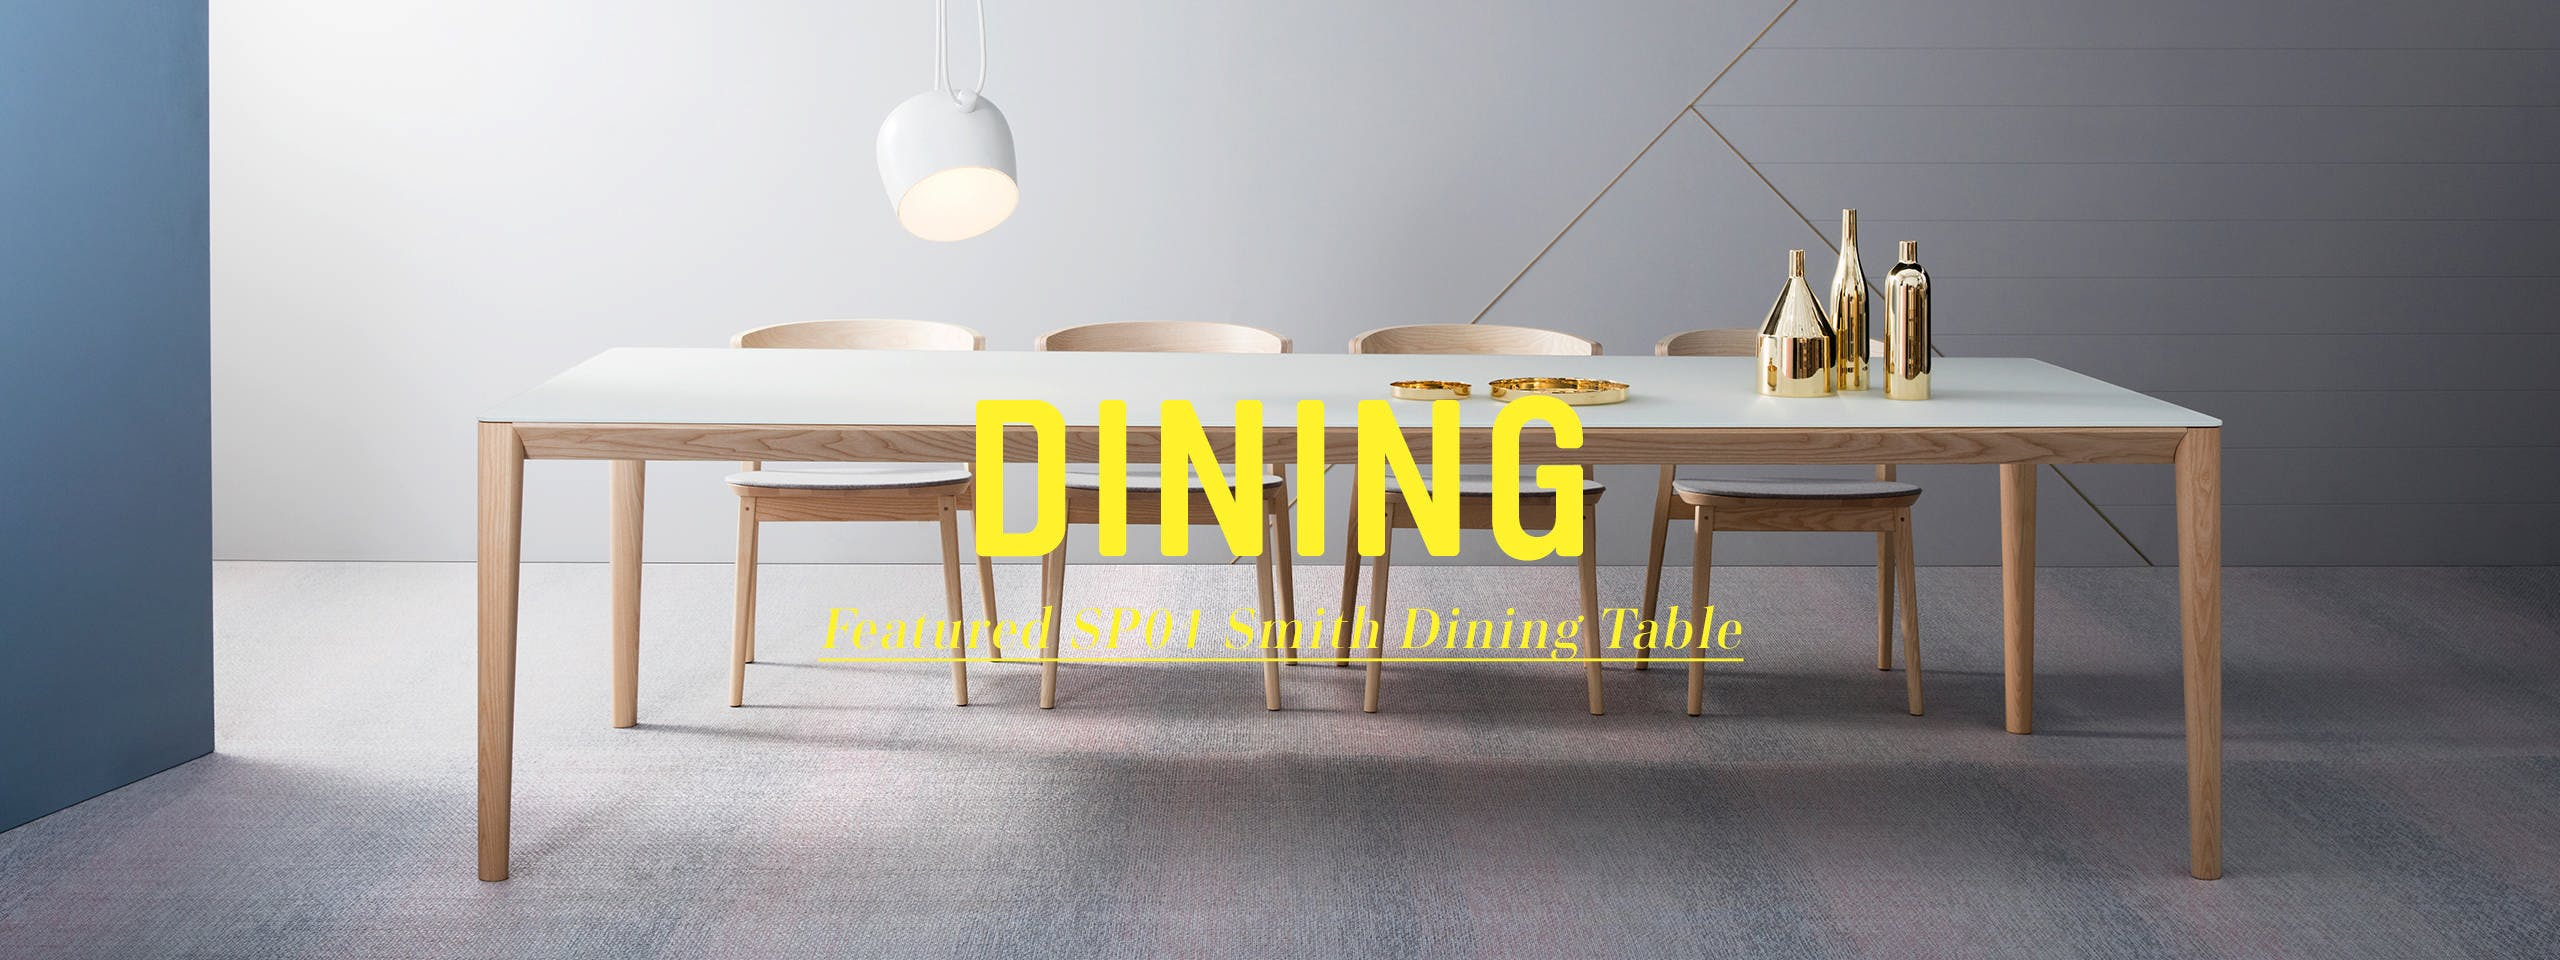 Dining Room Furniture Designer Tables Chairs Stools Space